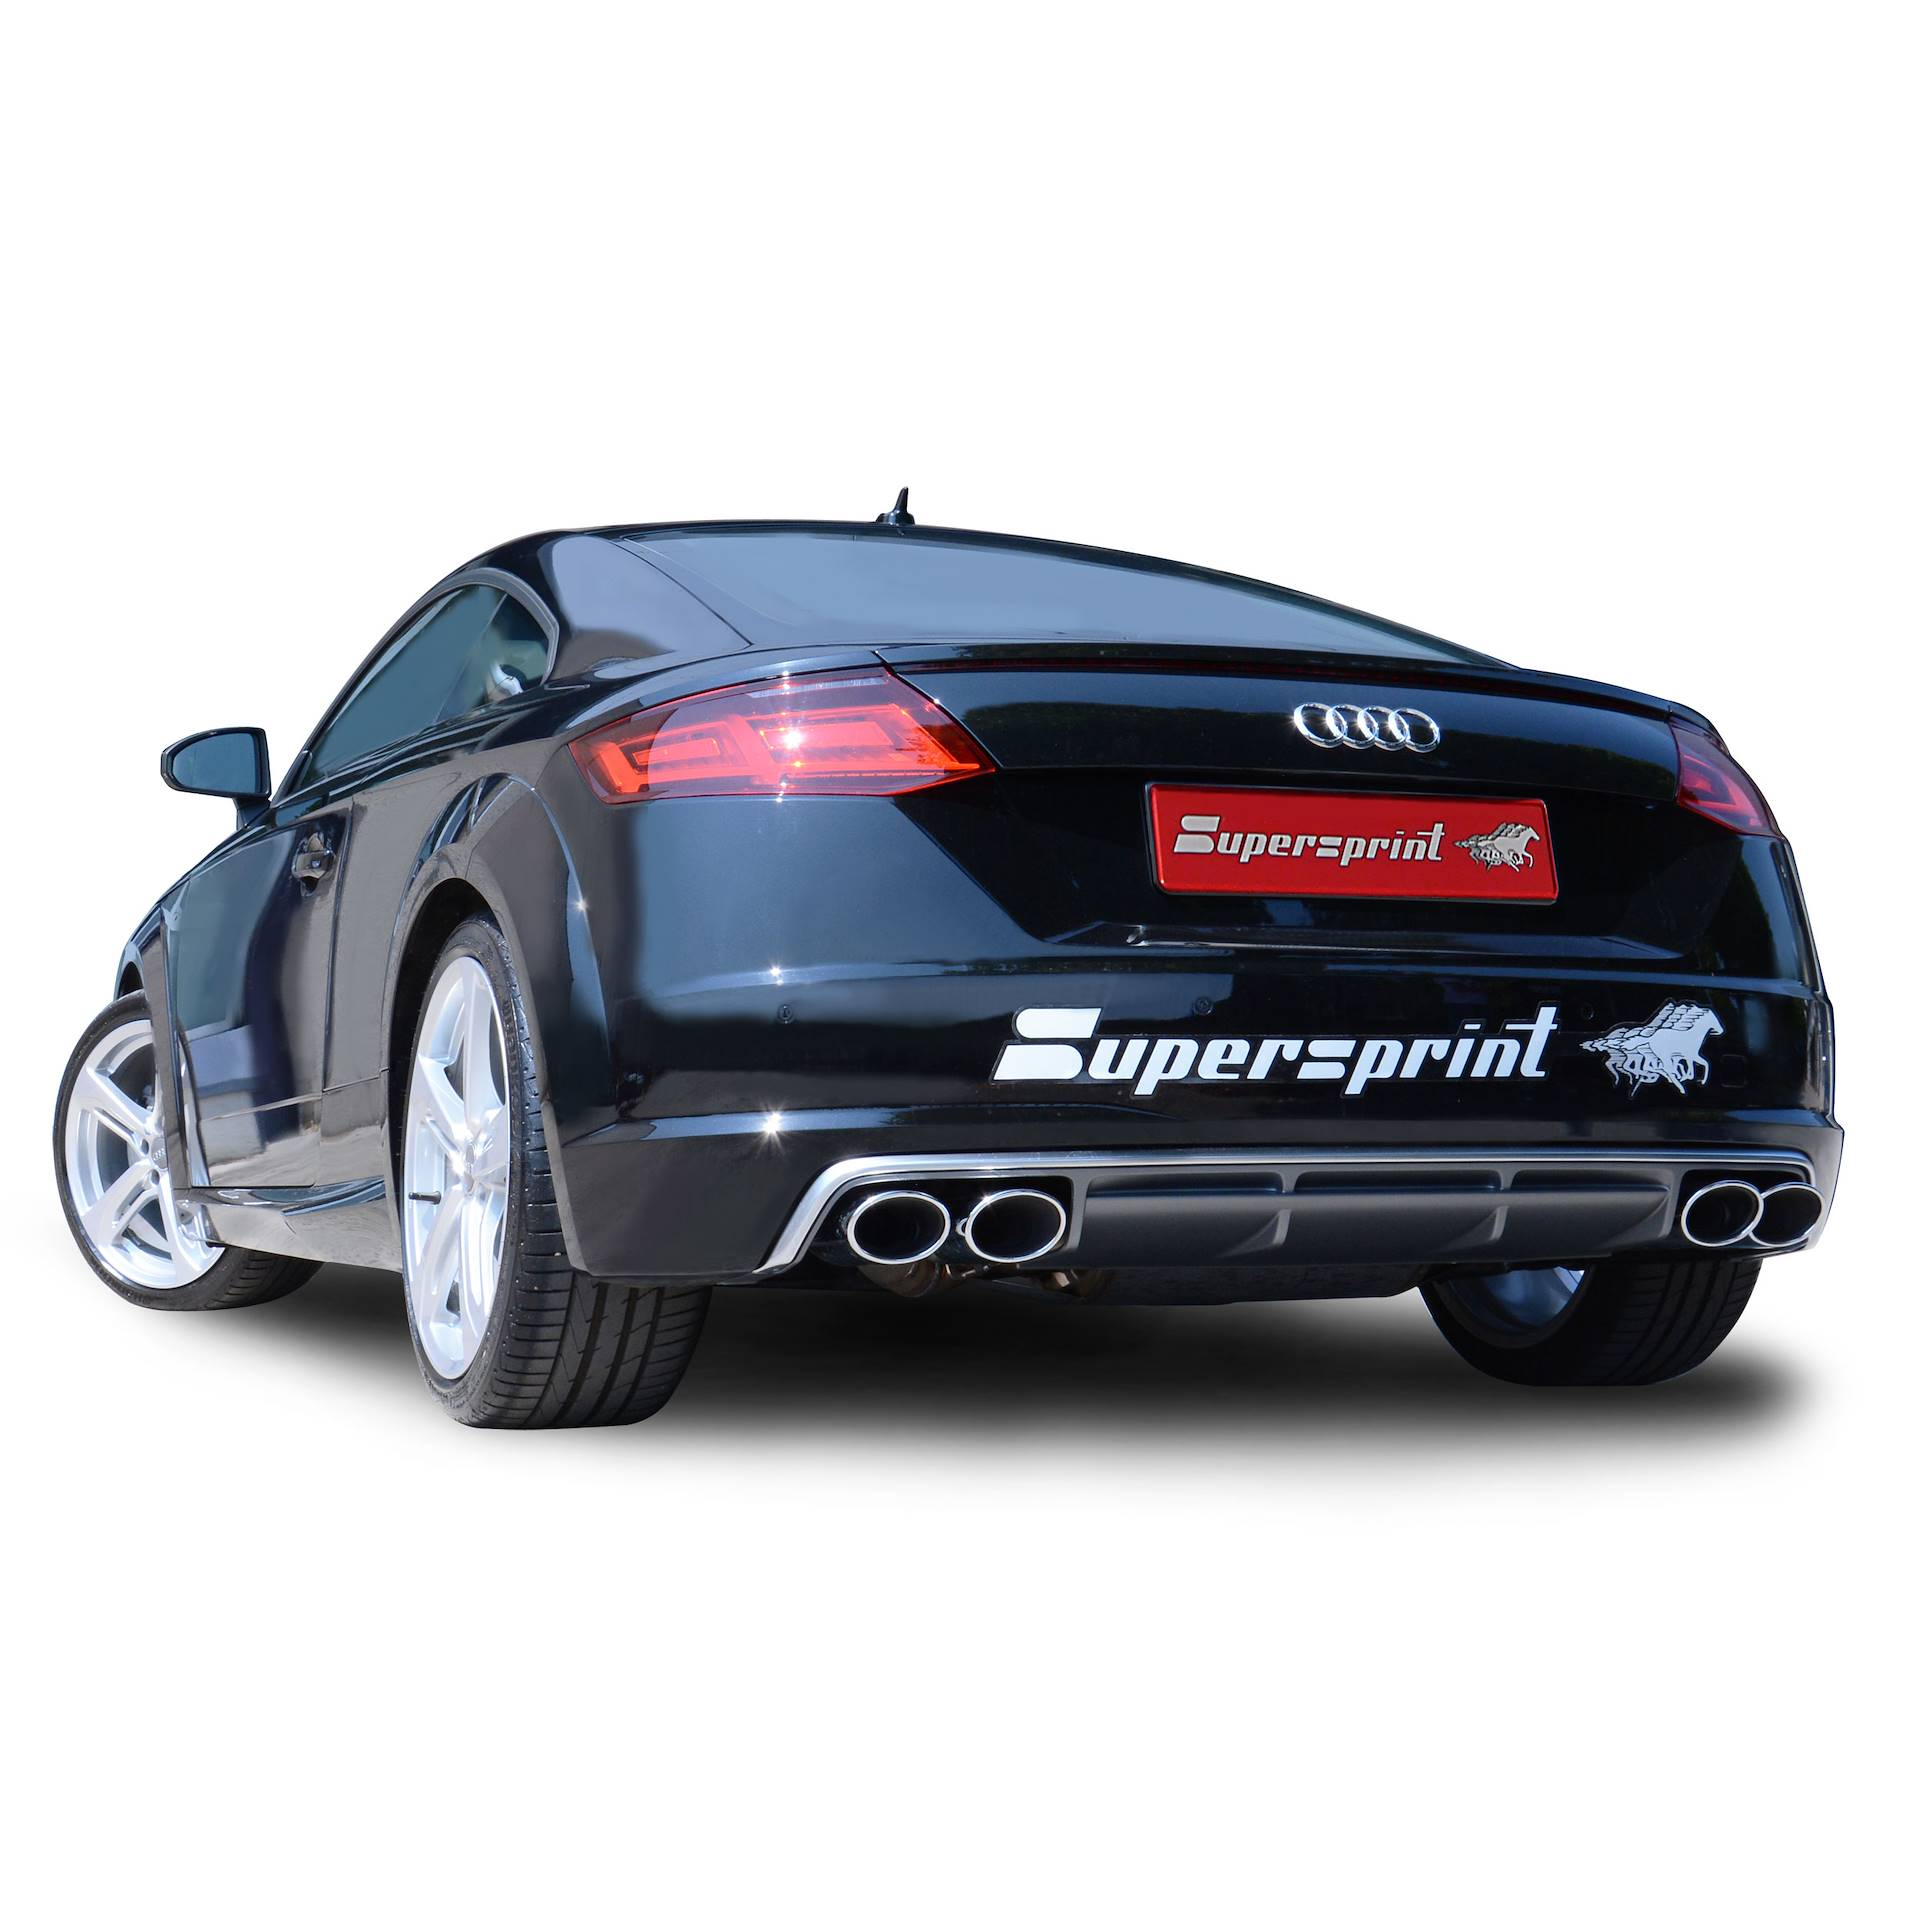 new sport exhaust for audi tt mk3 2 0 tfsi 2015 july 13. Black Bedroom Furniture Sets. Home Design Ideas